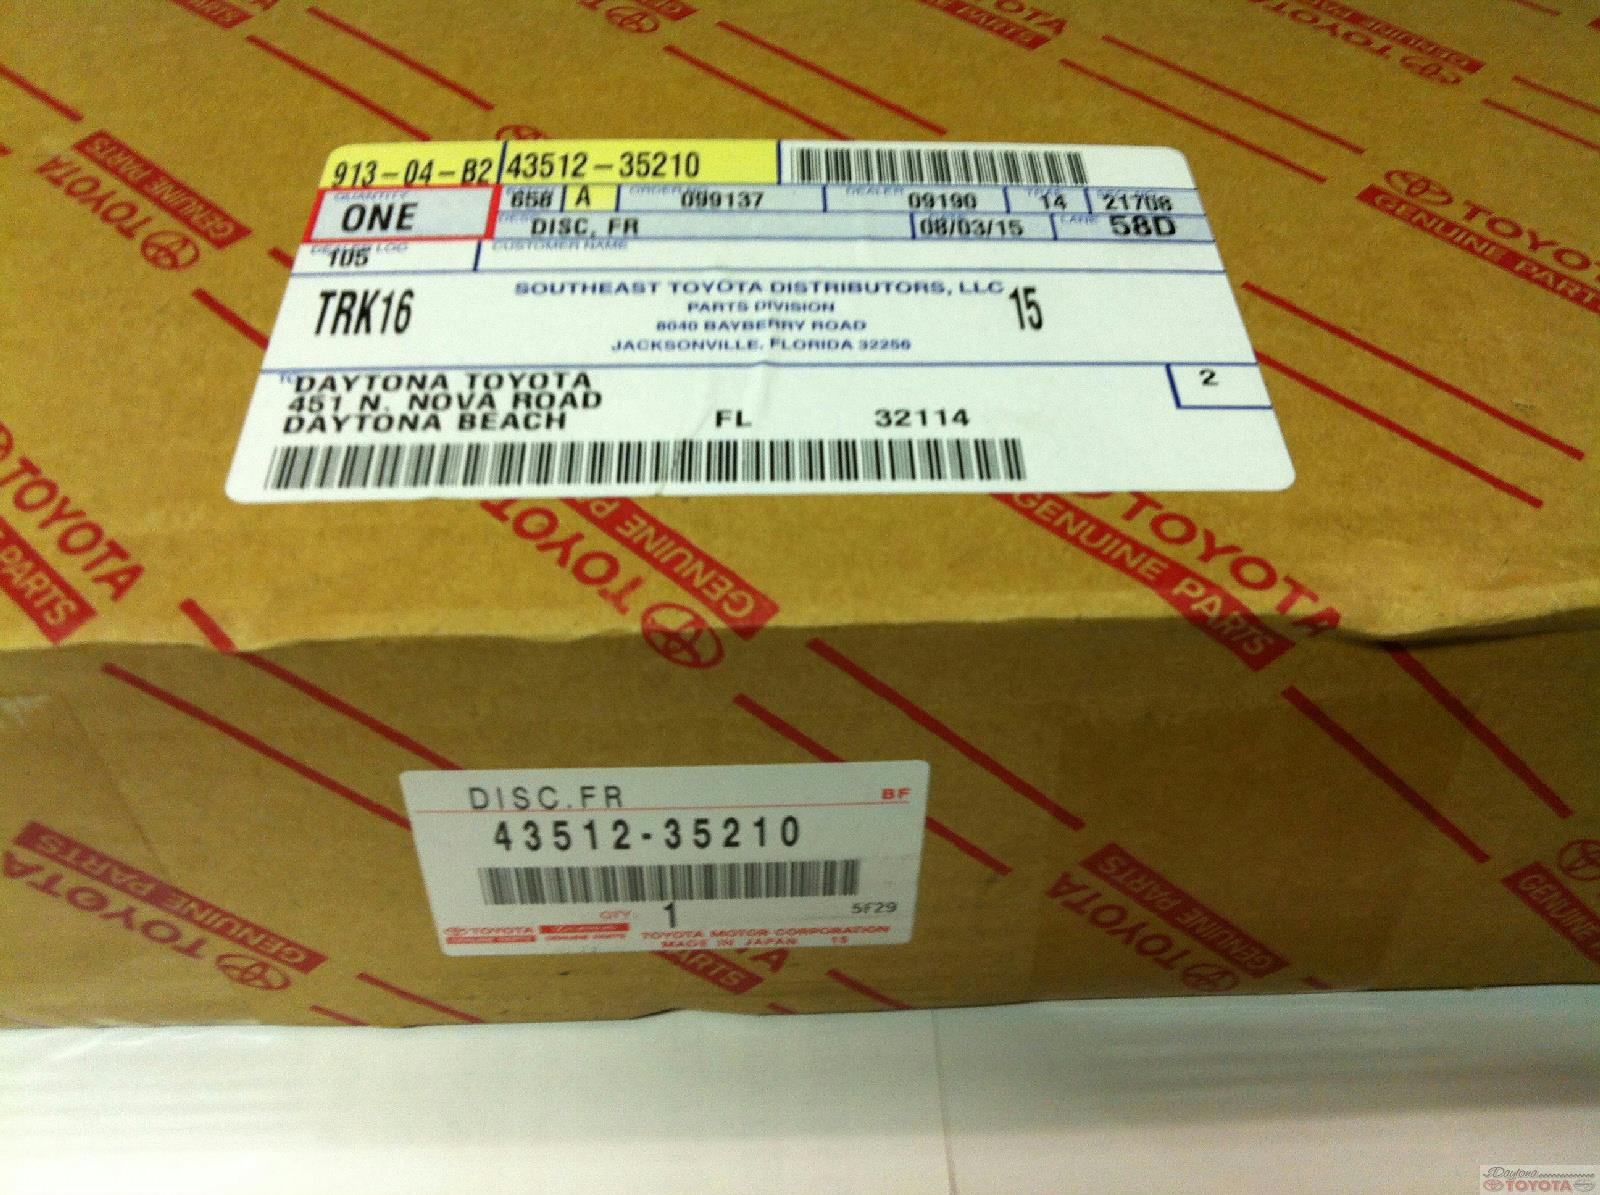 VIN# REQUIRED OEM TOYOTA REAR ROTOR FITS SELECT 4RUNNER,FJ CRUISER AND SEQUOIA